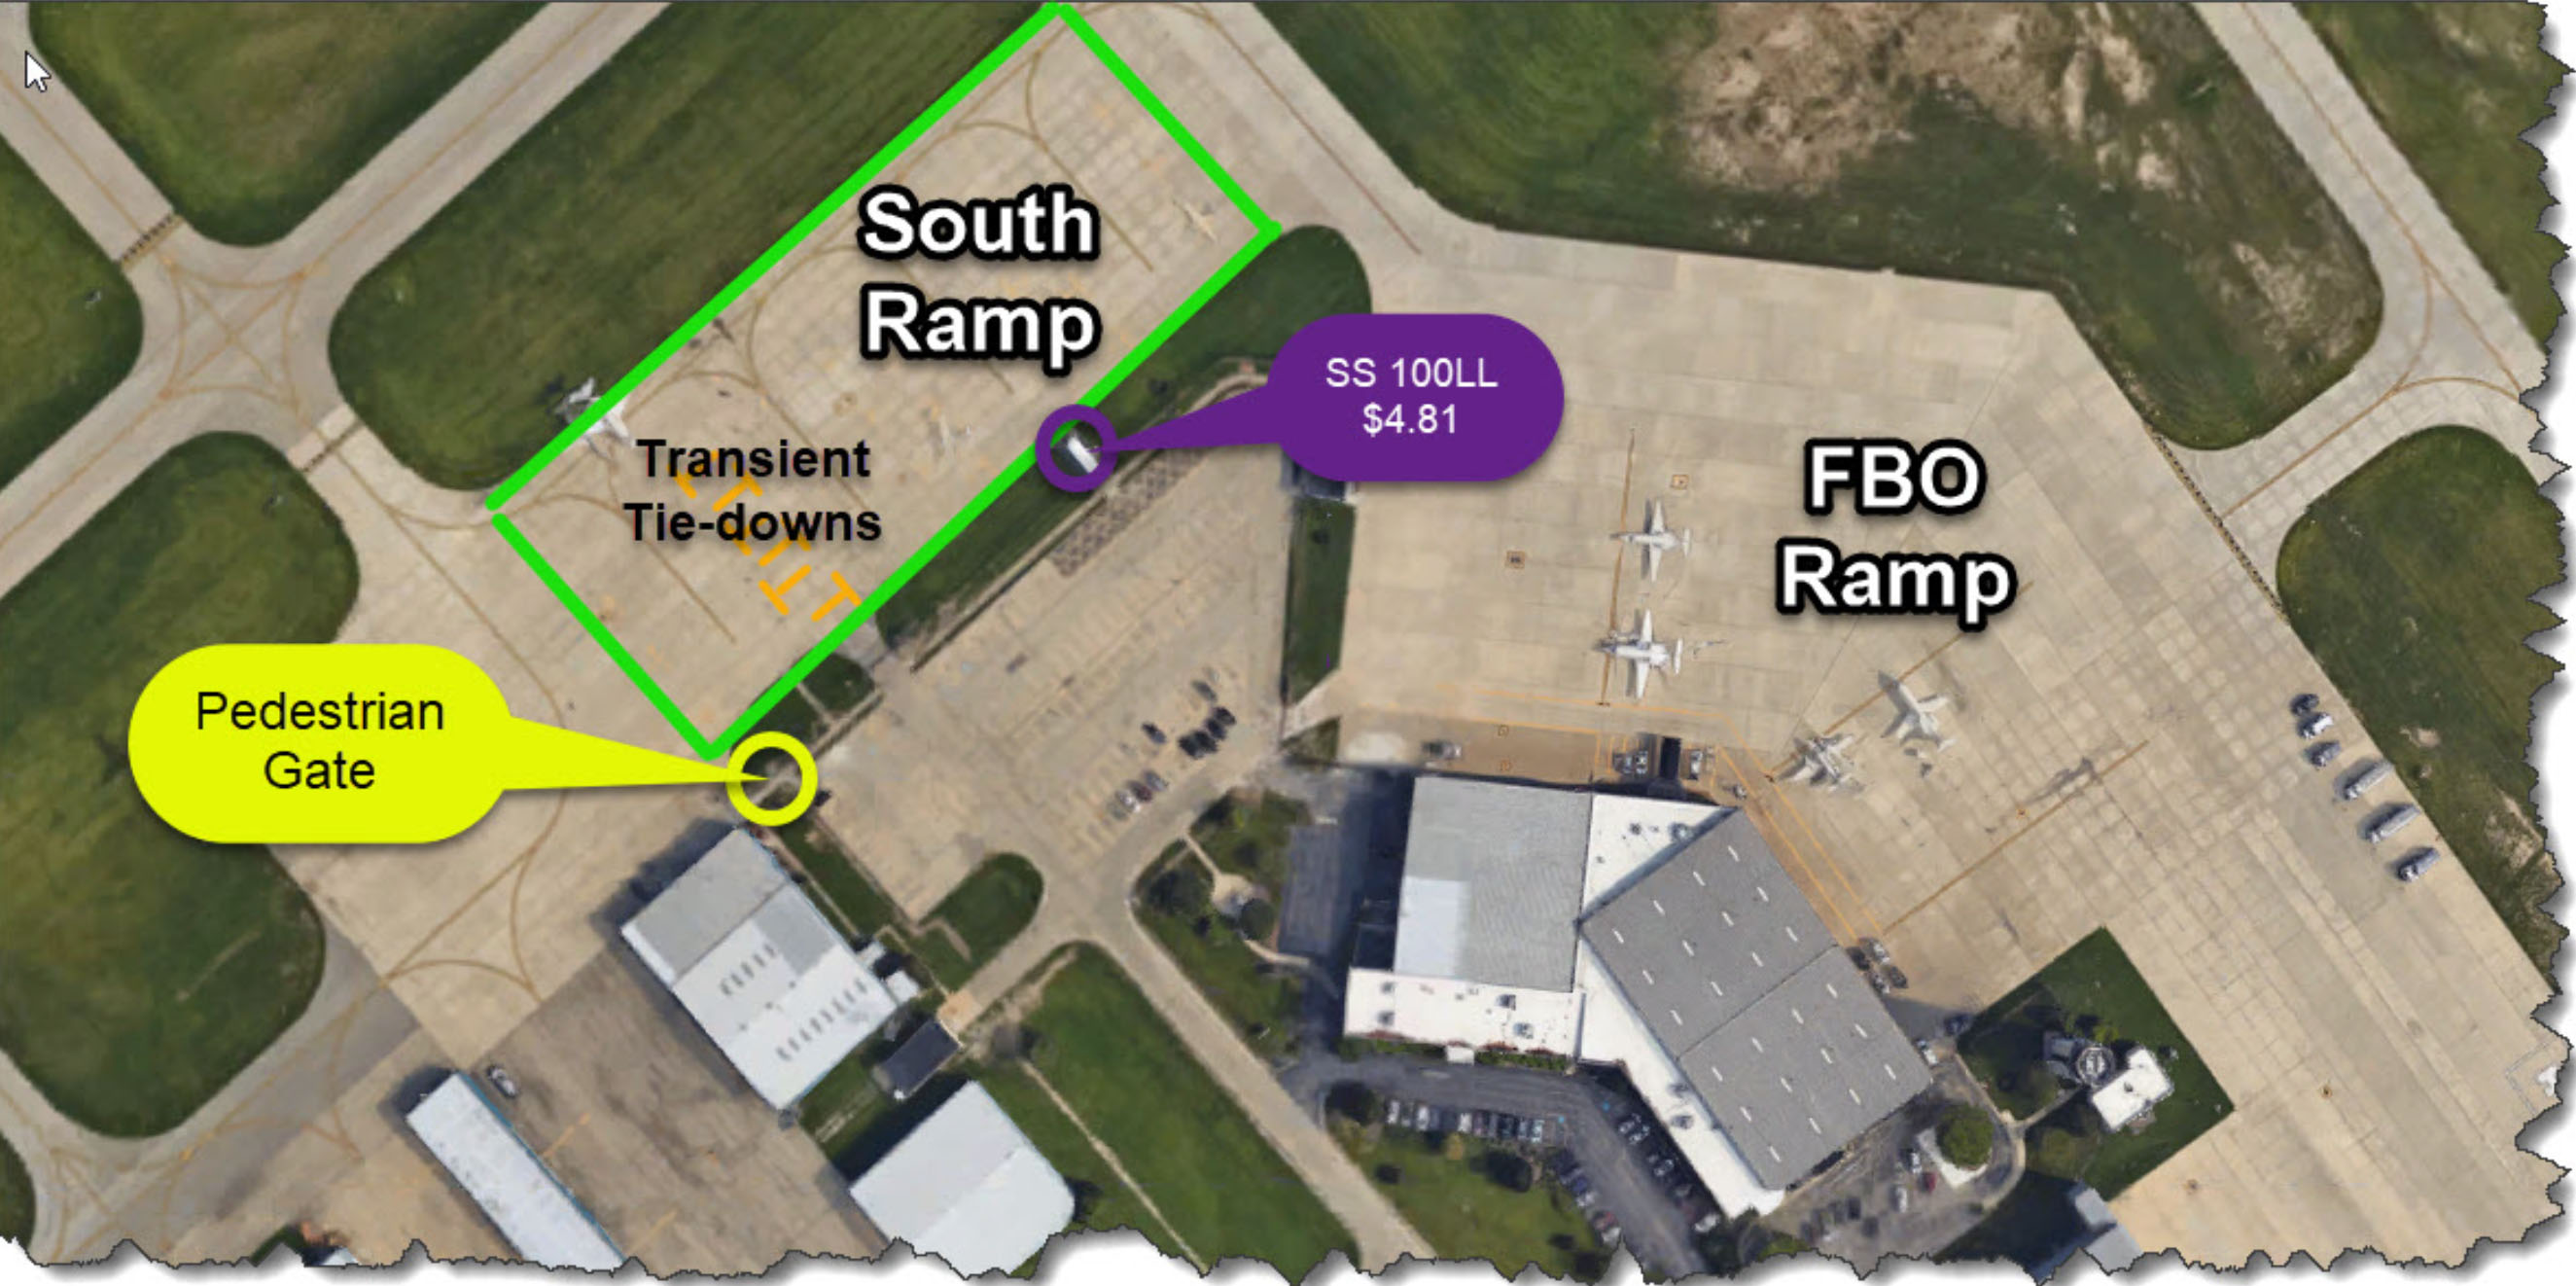 Waukegan National Airport published a map depicting free tiedowns for transients as well as the location of self-service avgas and a pedestrian entrance to the ramp. Photo courtesy of Waukegan National Airport.